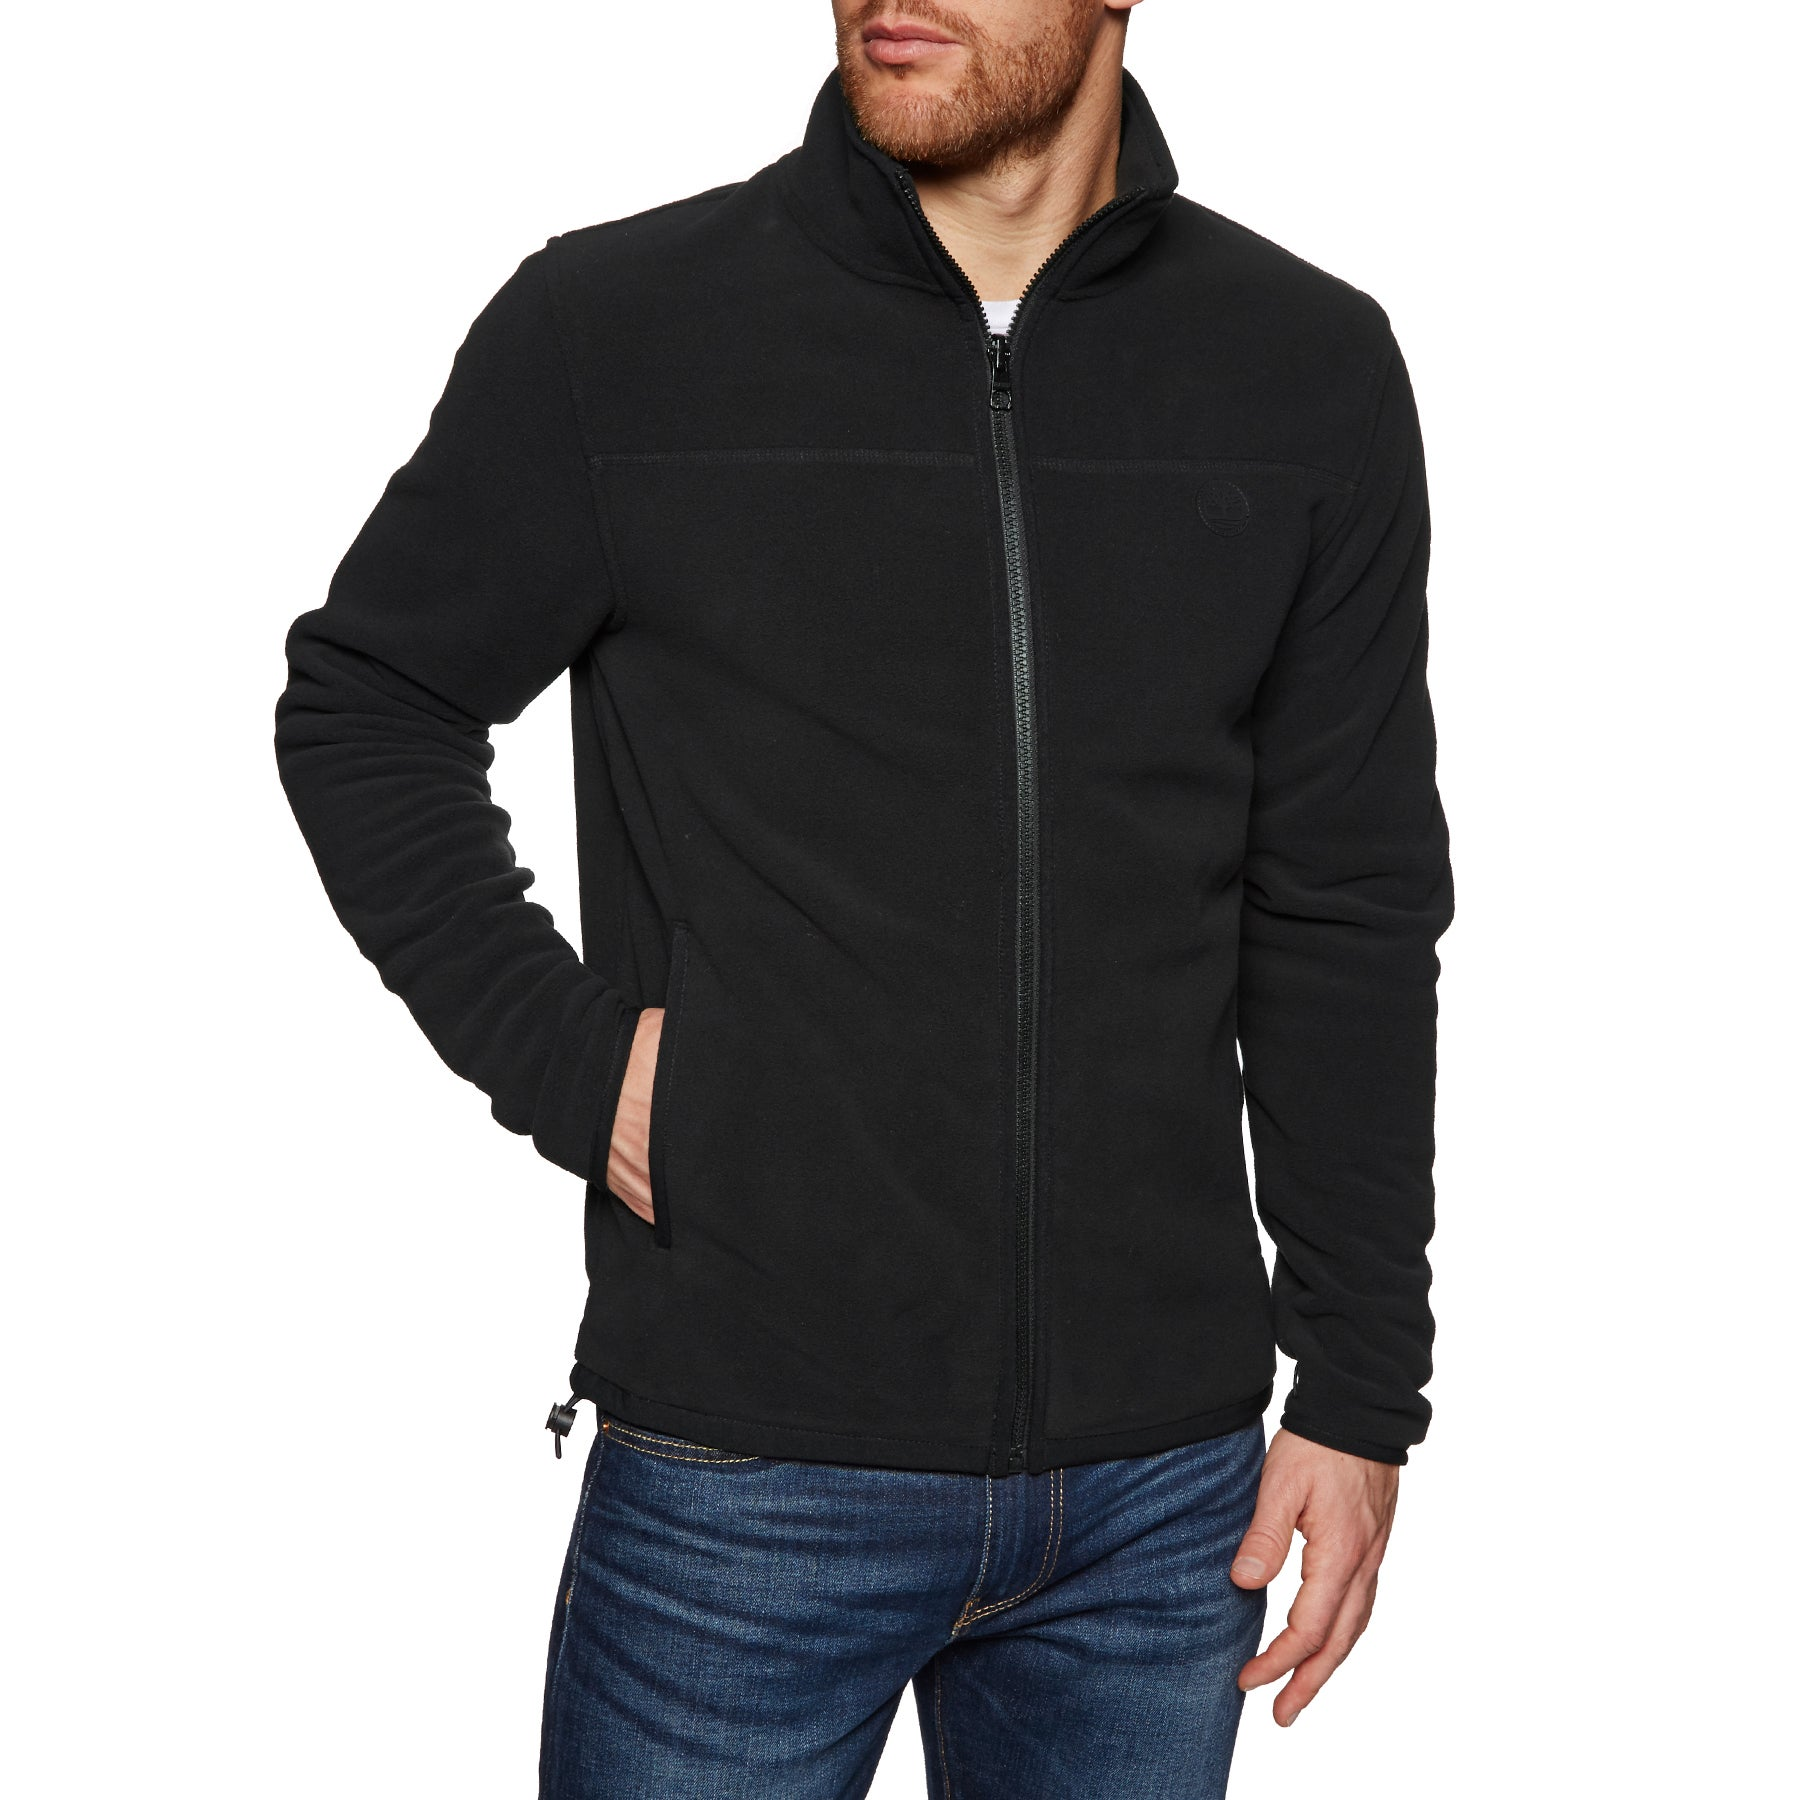 Timberland WHTFC RVR Full Zip Polar Fleece - Black